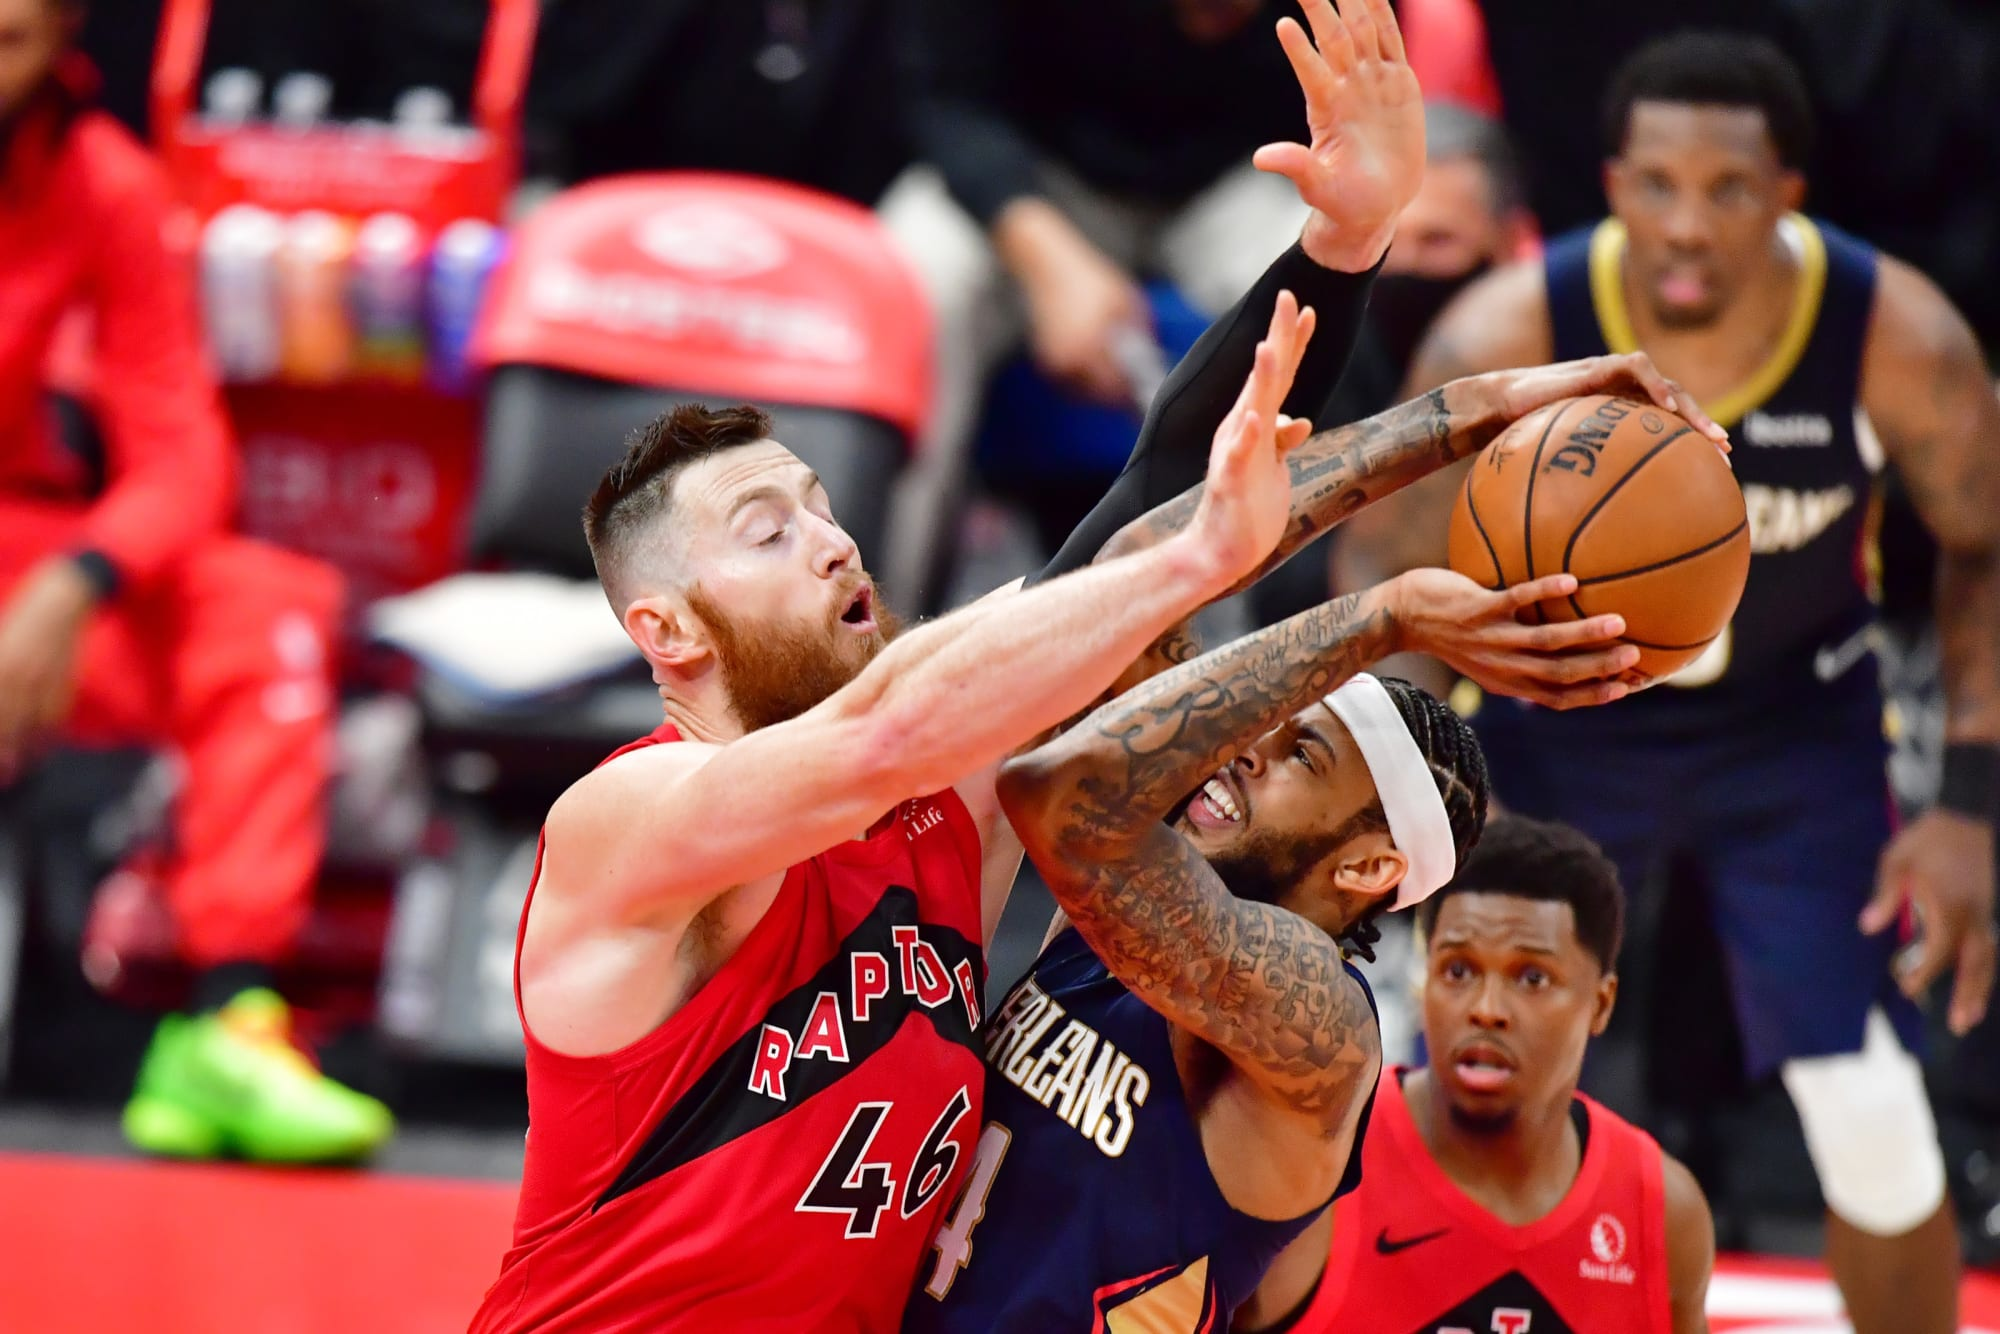 Raptors: Panic or patience on 3 struggling players